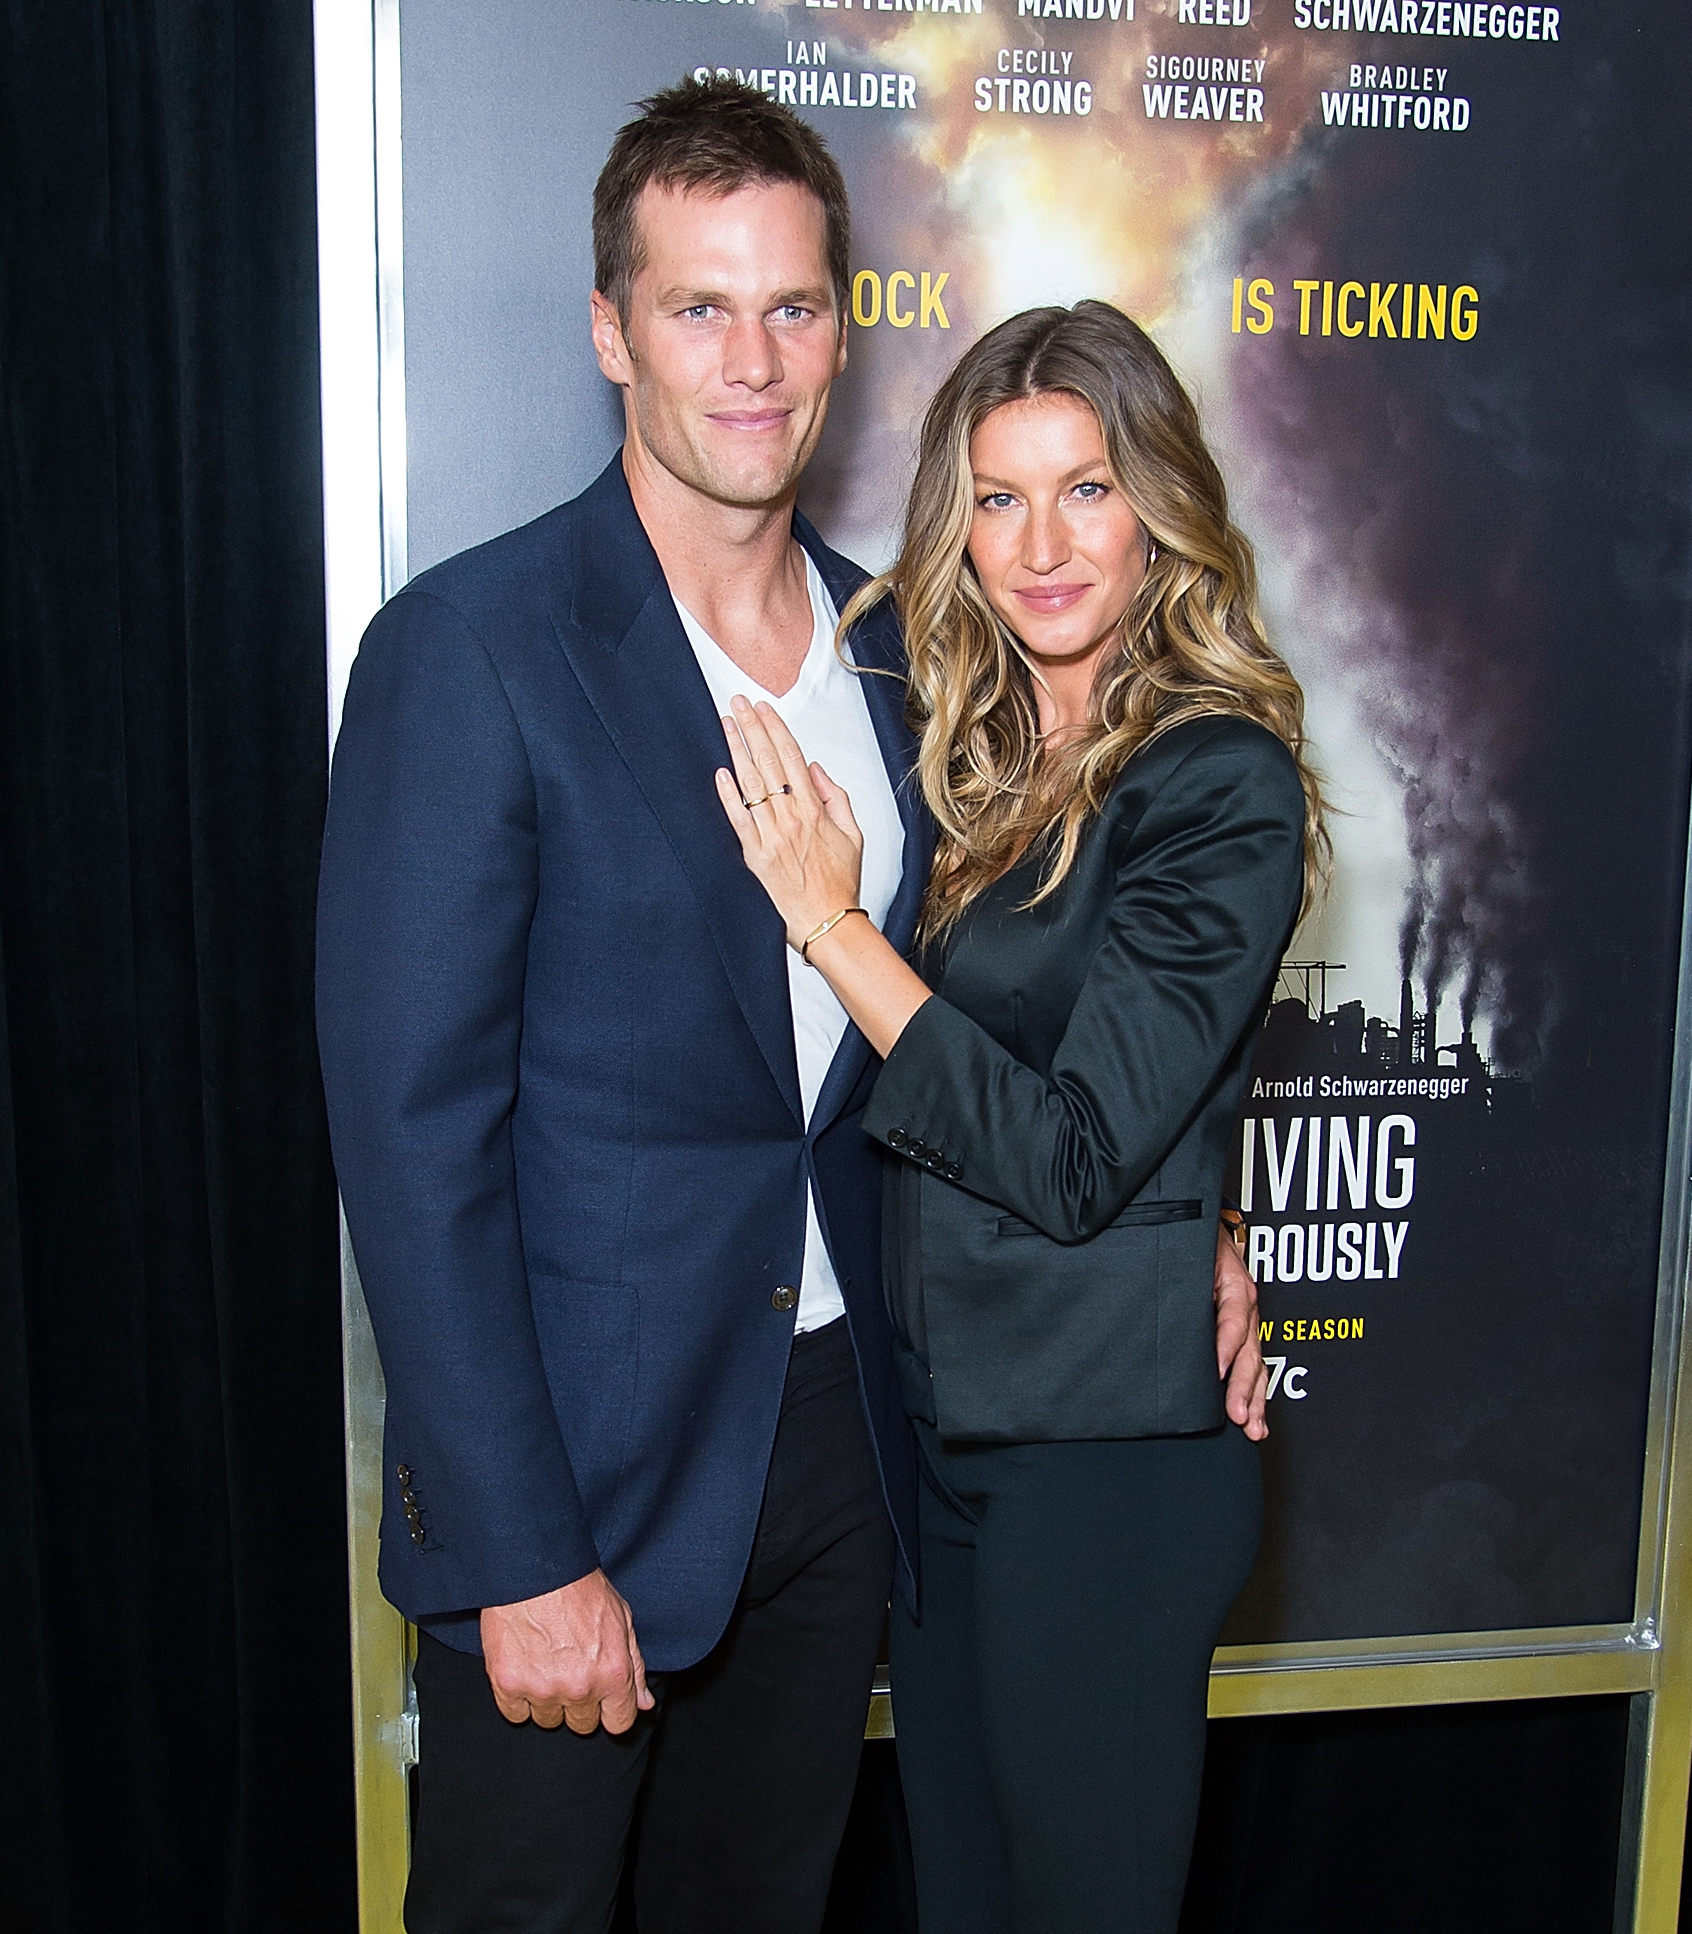 Tom Brady (L) and model Gisele Bundchen attend National Geographic's 'Years Of Living Dangerously' new season world premiere at American Museum of Natural History in New York City on September 21, 2016.